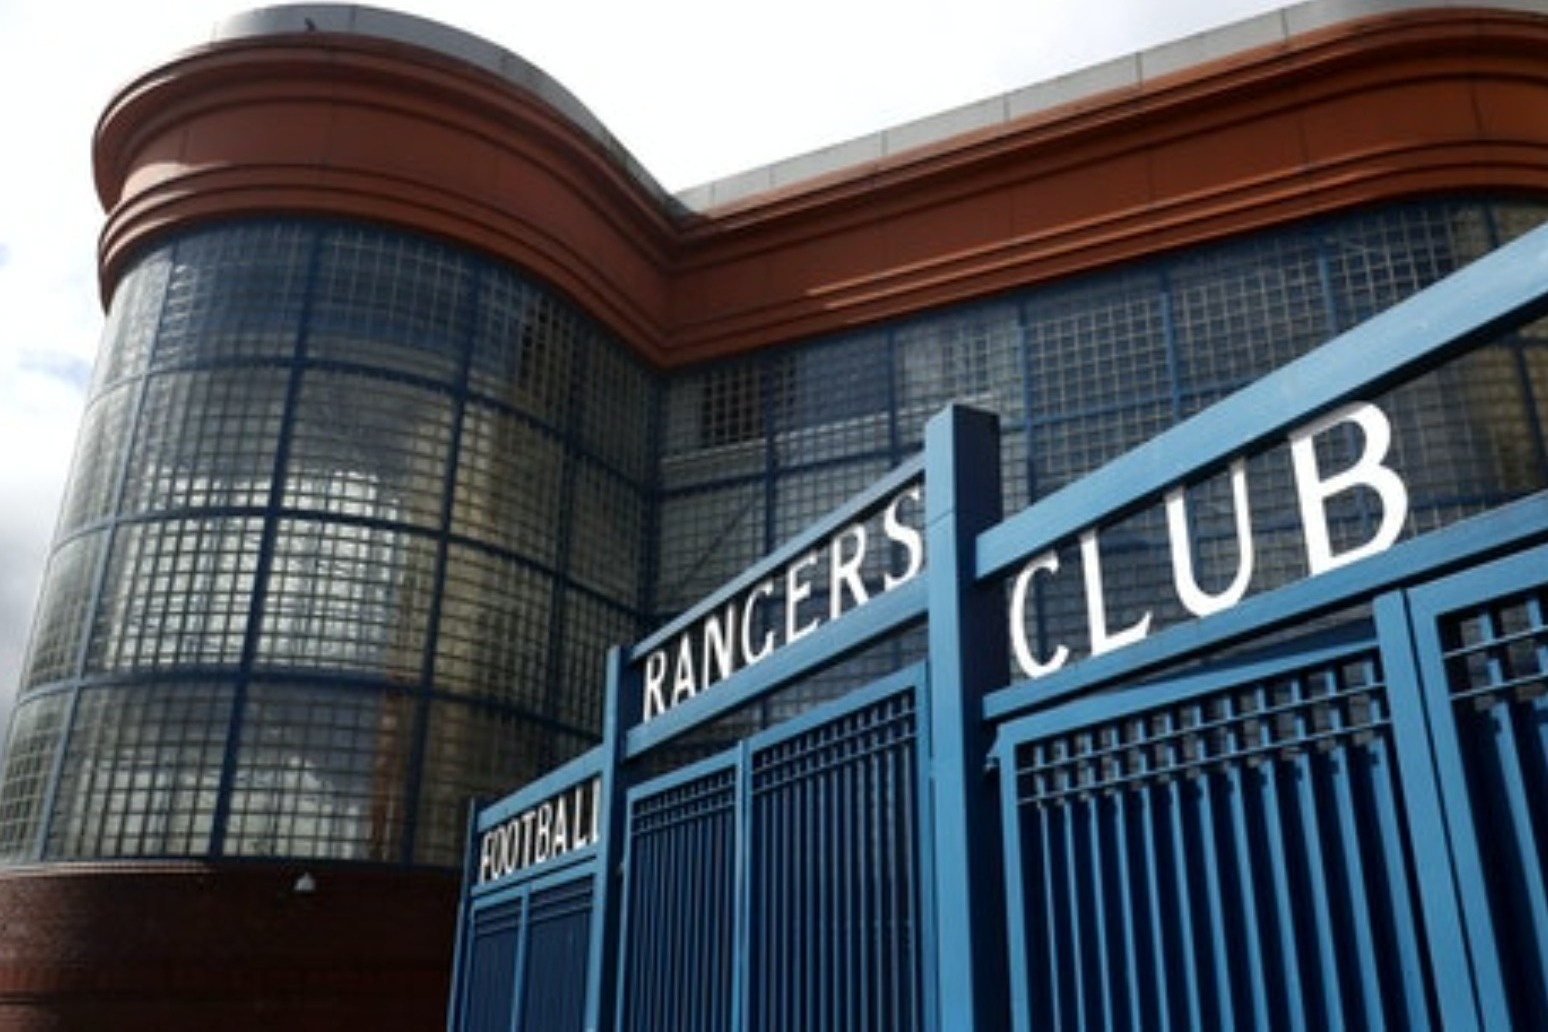 Competition watchdog to probe Rangers and retailers over replica kits